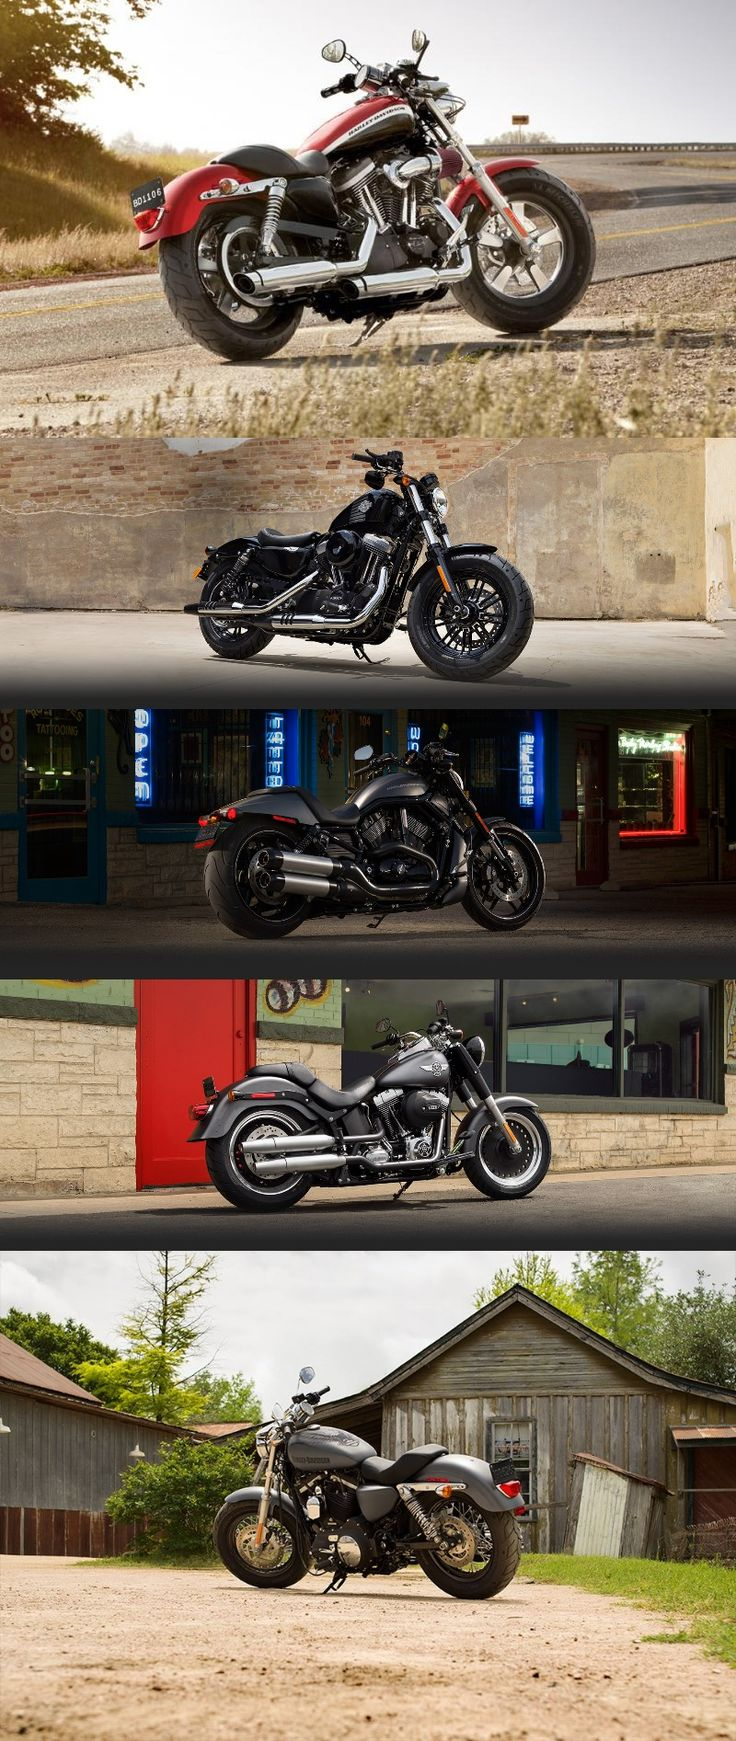 Harley Davidson introduces new cruiser in its 2016 indian lineup named Harley-Davidson 1200 Custom to join the race with the American rival Indian Motorcycles.